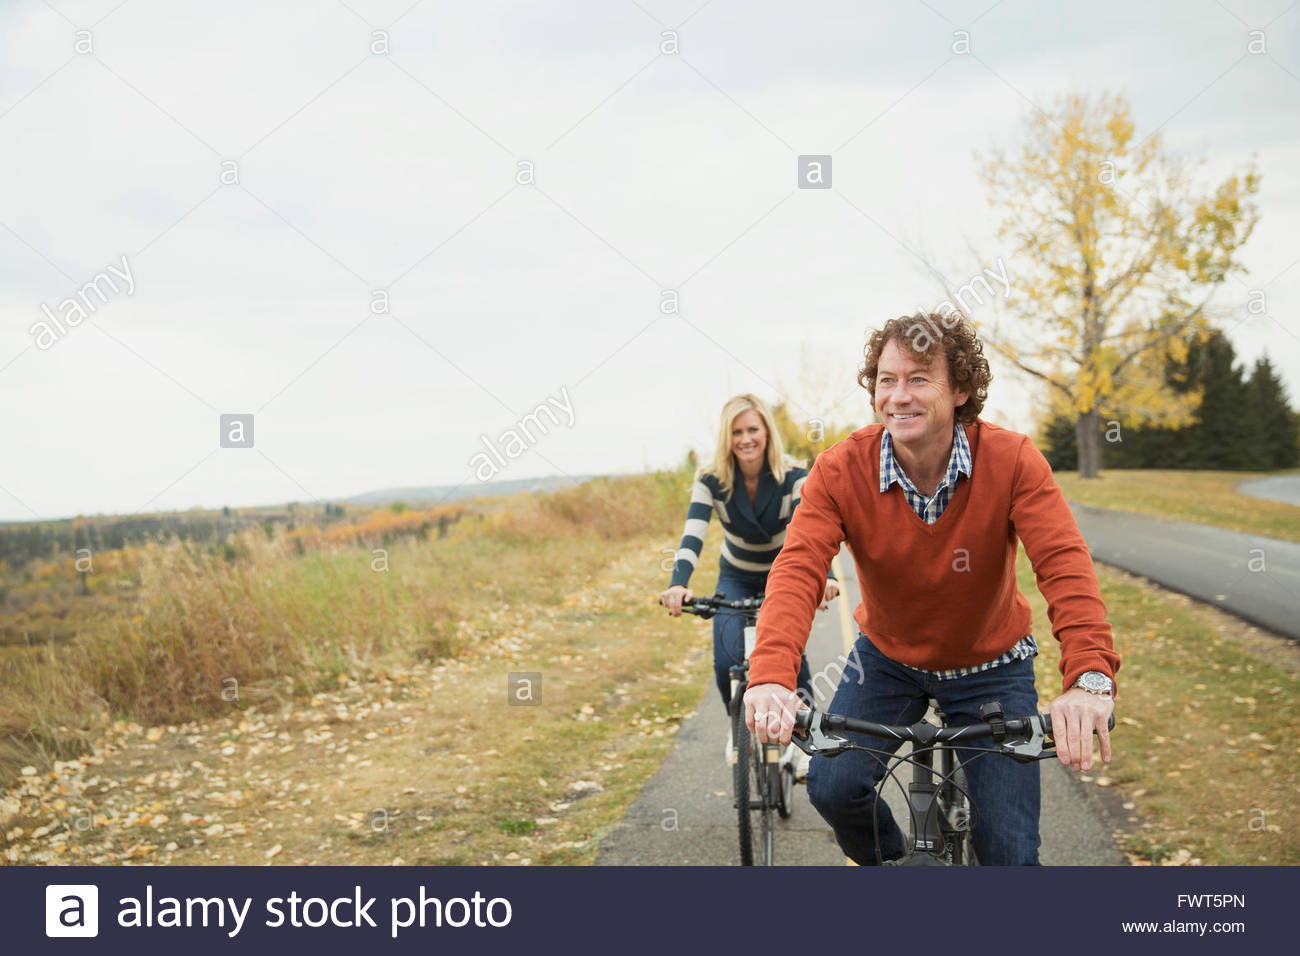 Mature couple cycling on pathway in park - Stock Image